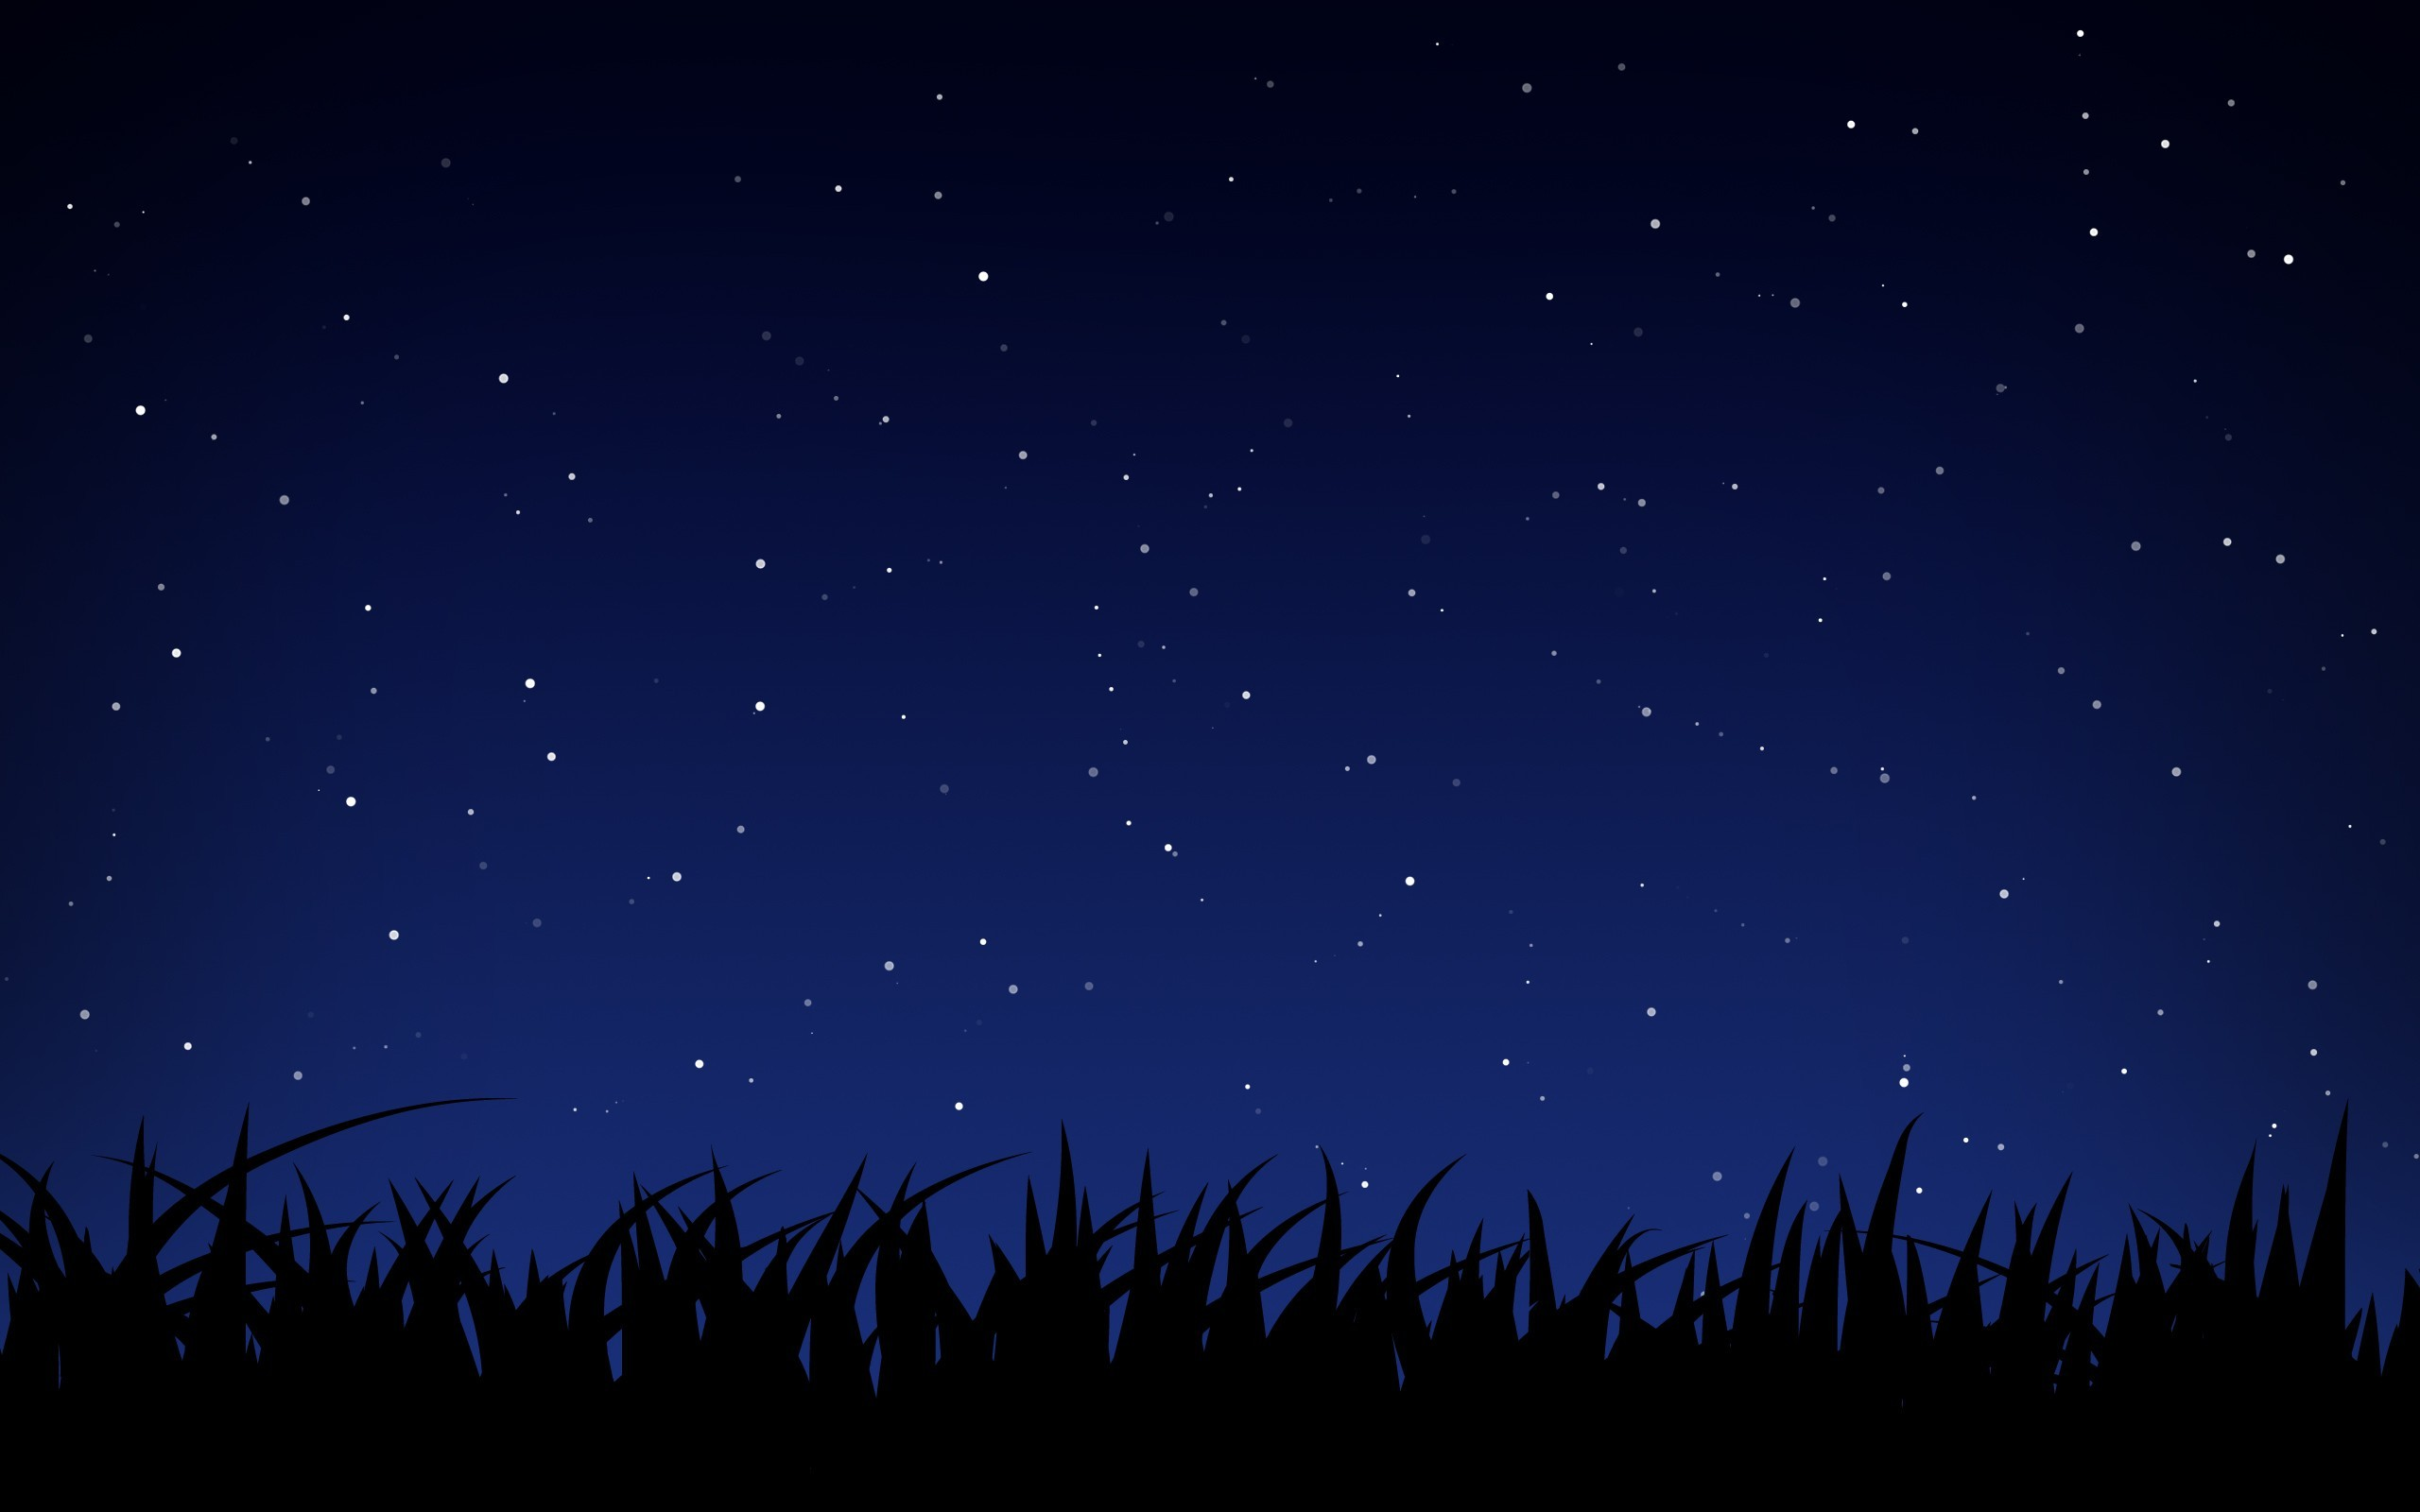 3d Moving Galaxy Wallpaper Night Sky Background 183 ①